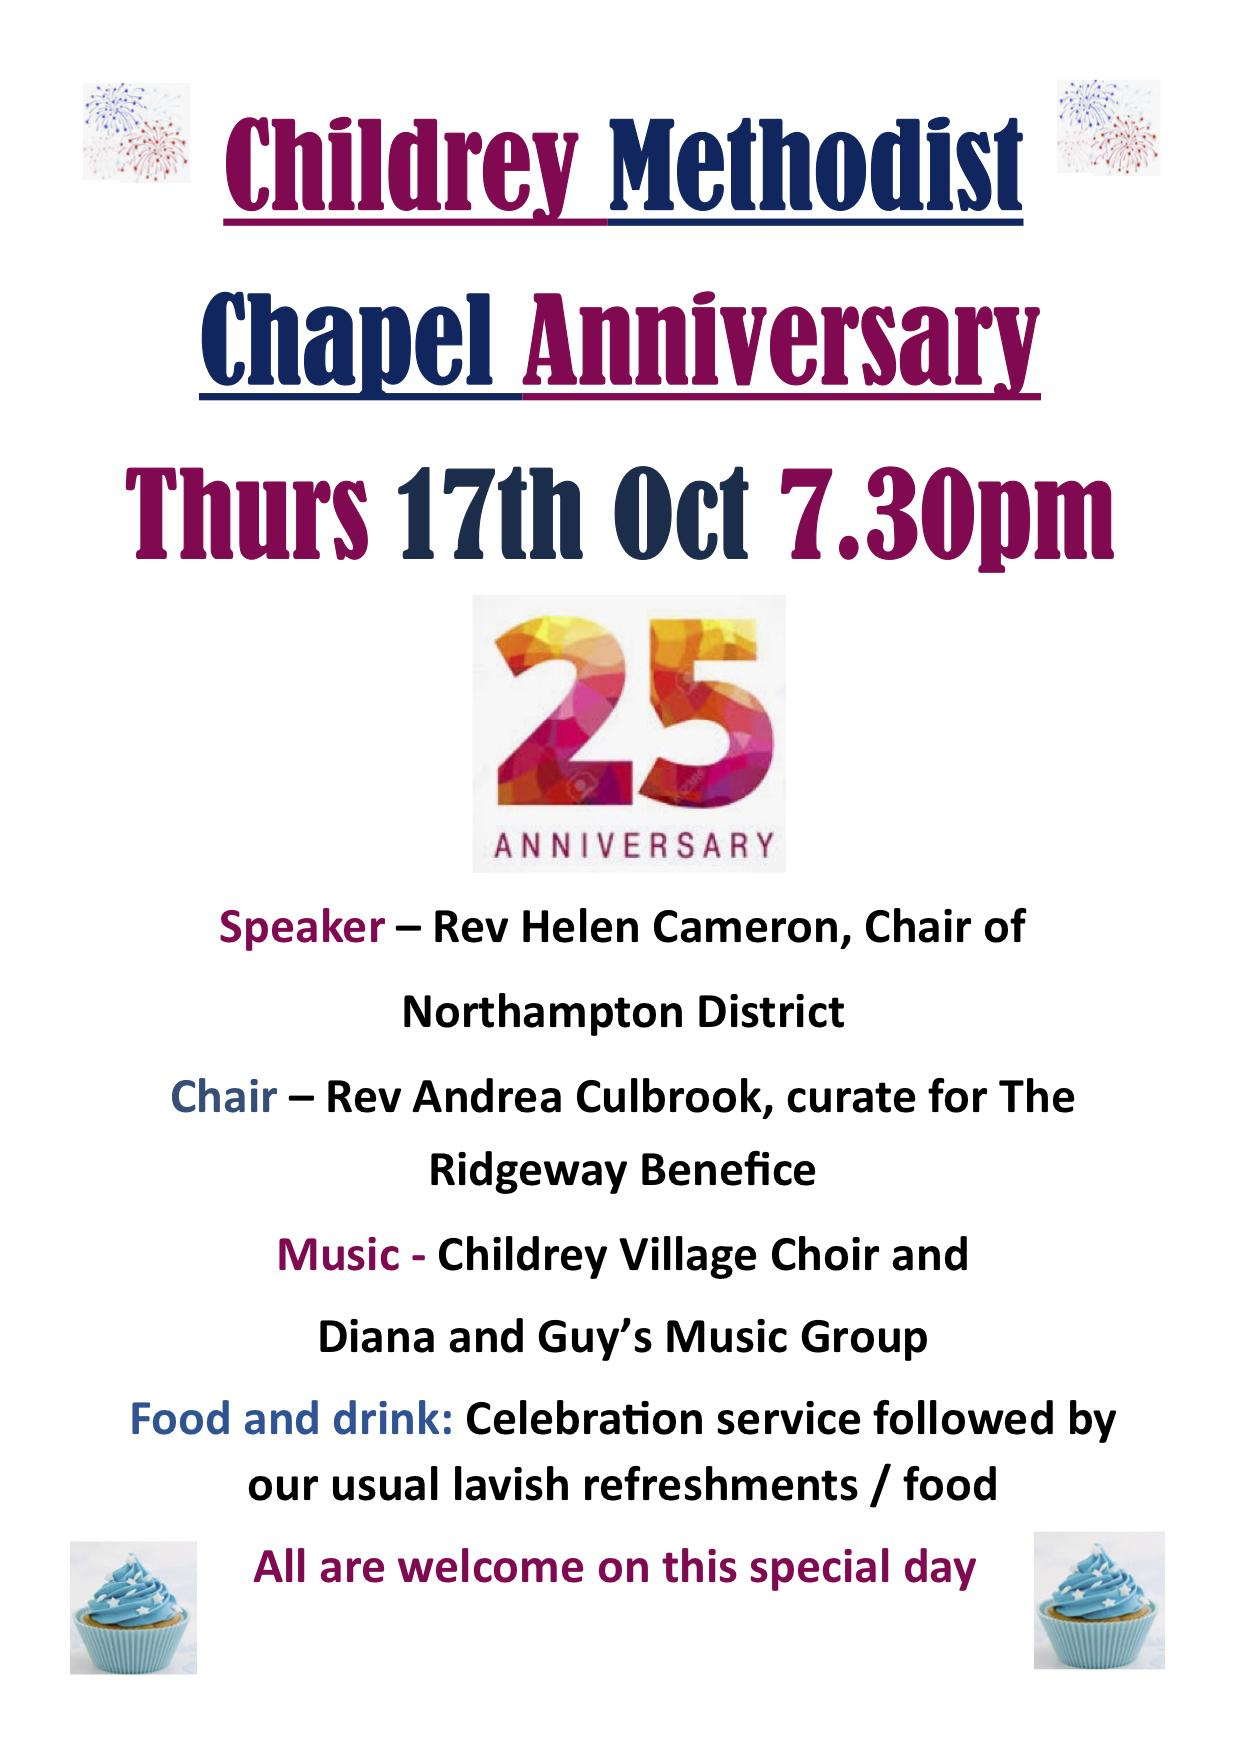 Childdrey Chapel Anniversary 25yrs - Thurs 17th Oct 2019 - 7-30pm